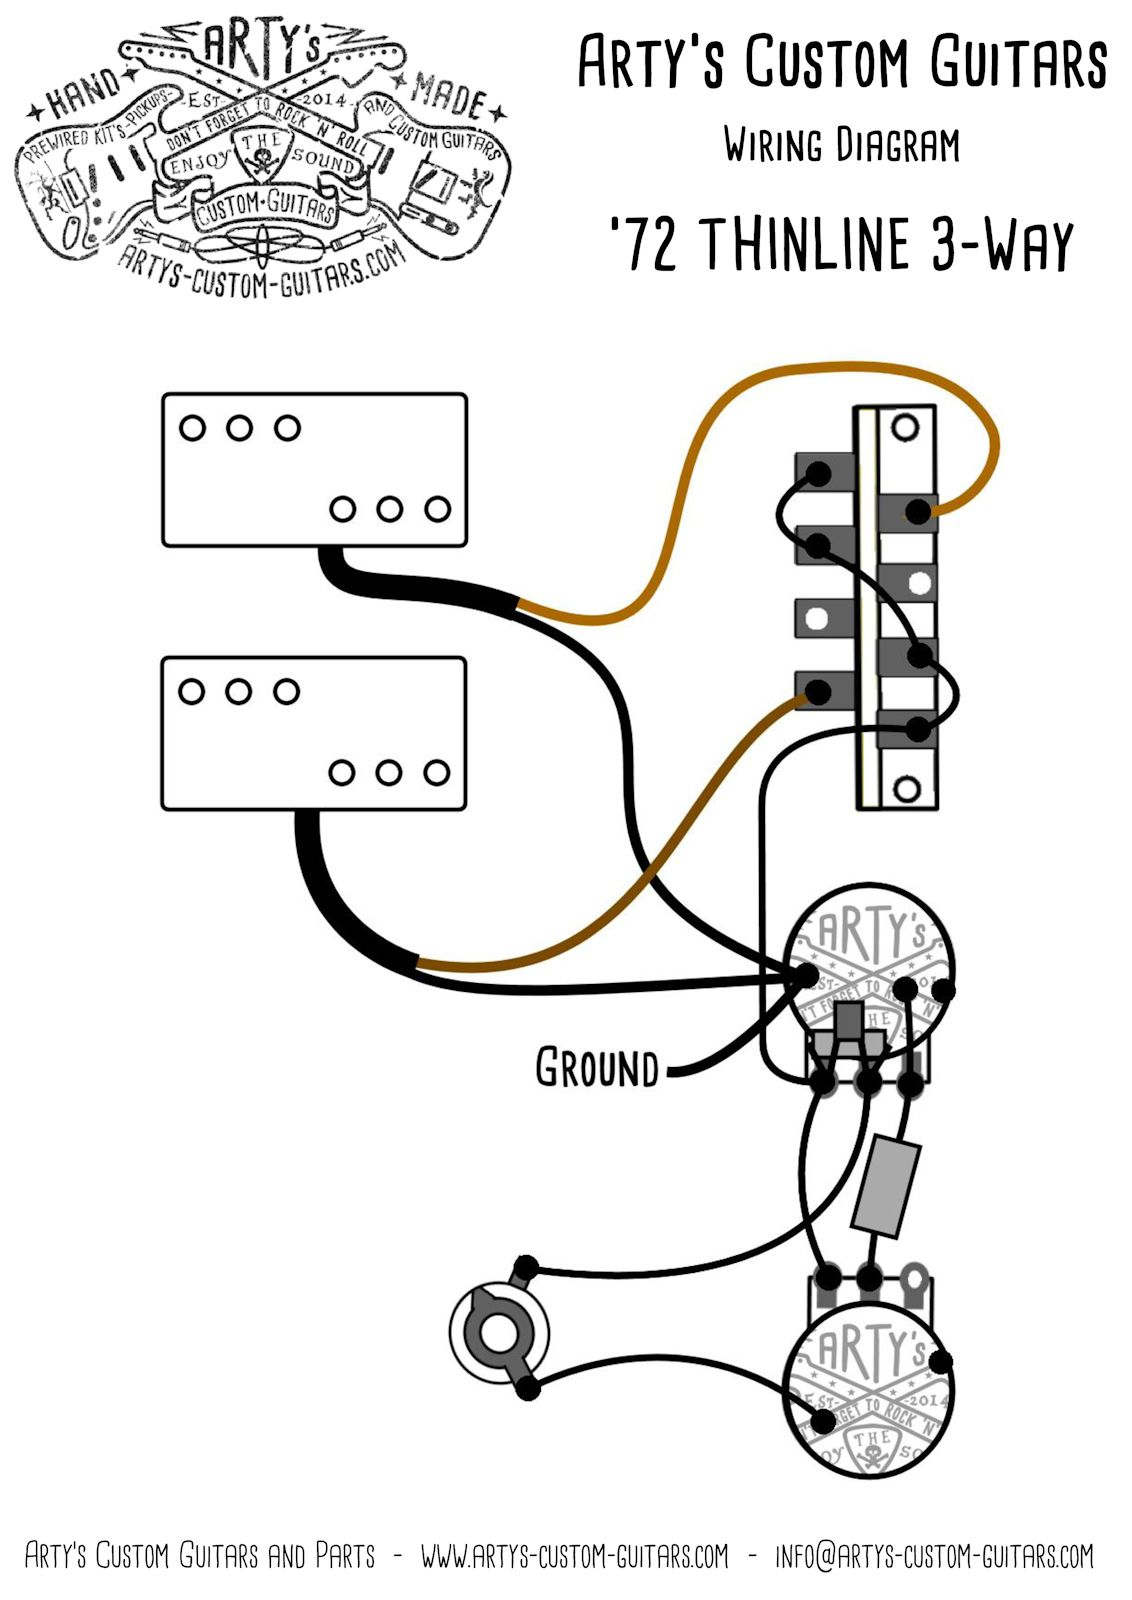 Astounding Fender Telecaster Thinline Wiring Diagram General Wiring Diagram Data Wiring 101 Cranwise Assnl